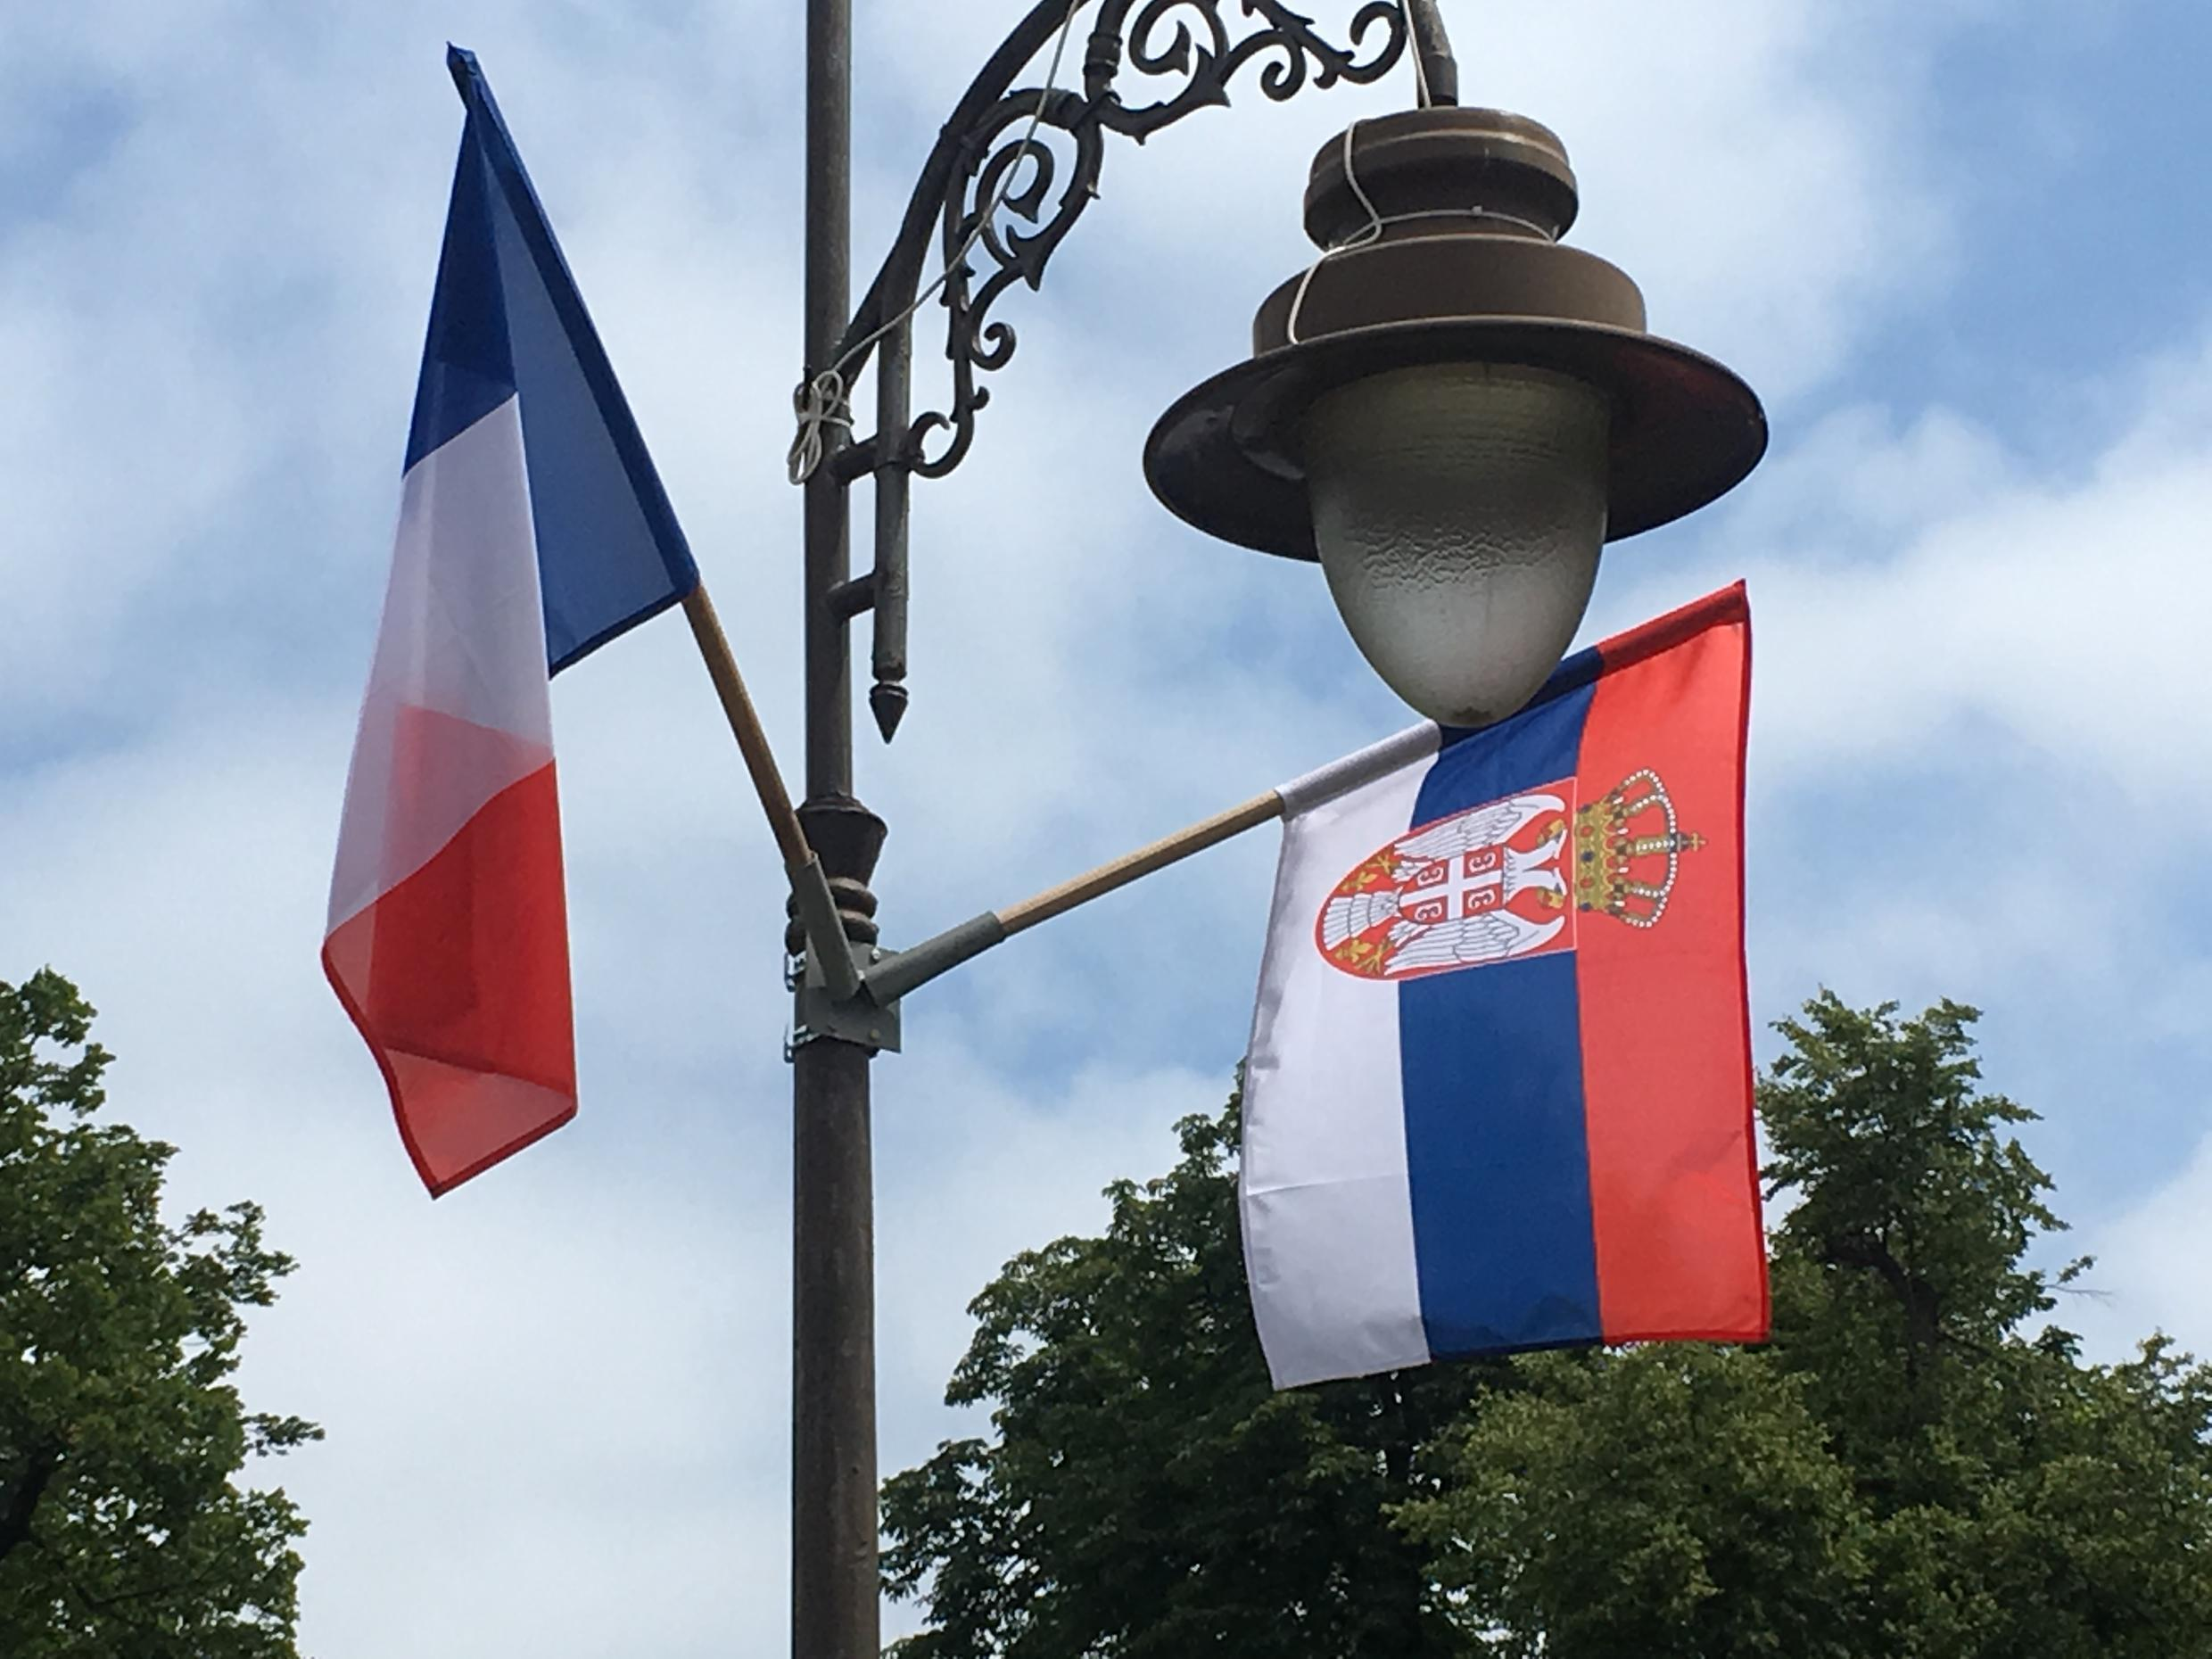 French and Serbian flags put together in a park in Belgrade during a visit by French President Emmanuel Macron, 6 June 2019.